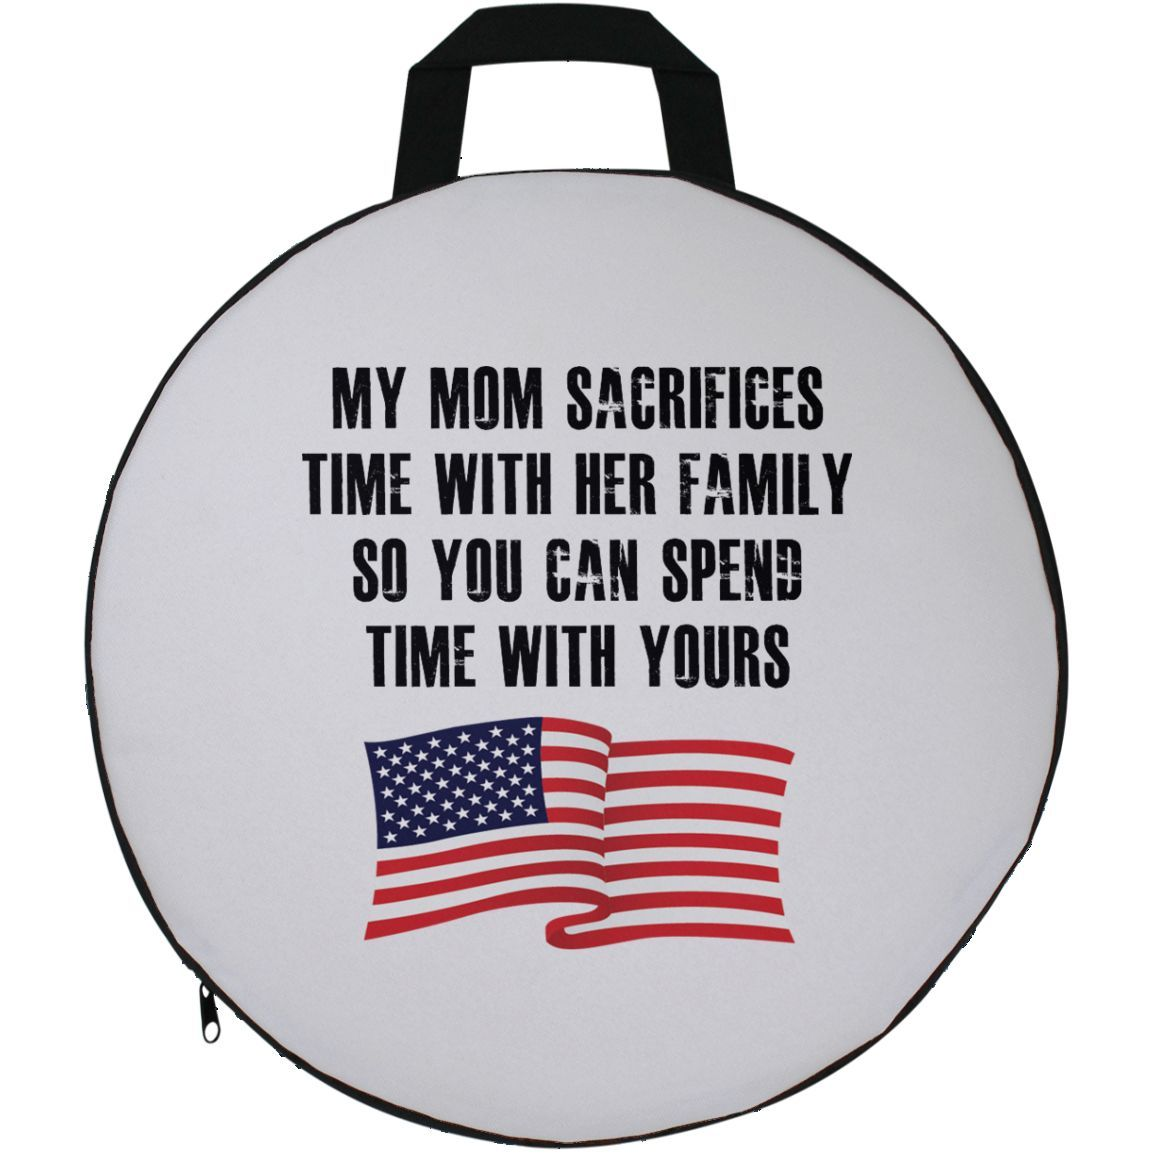 My Mom Sacrifices Time With Her Family So You Can Spend Time With Yours Round Seat Cushion